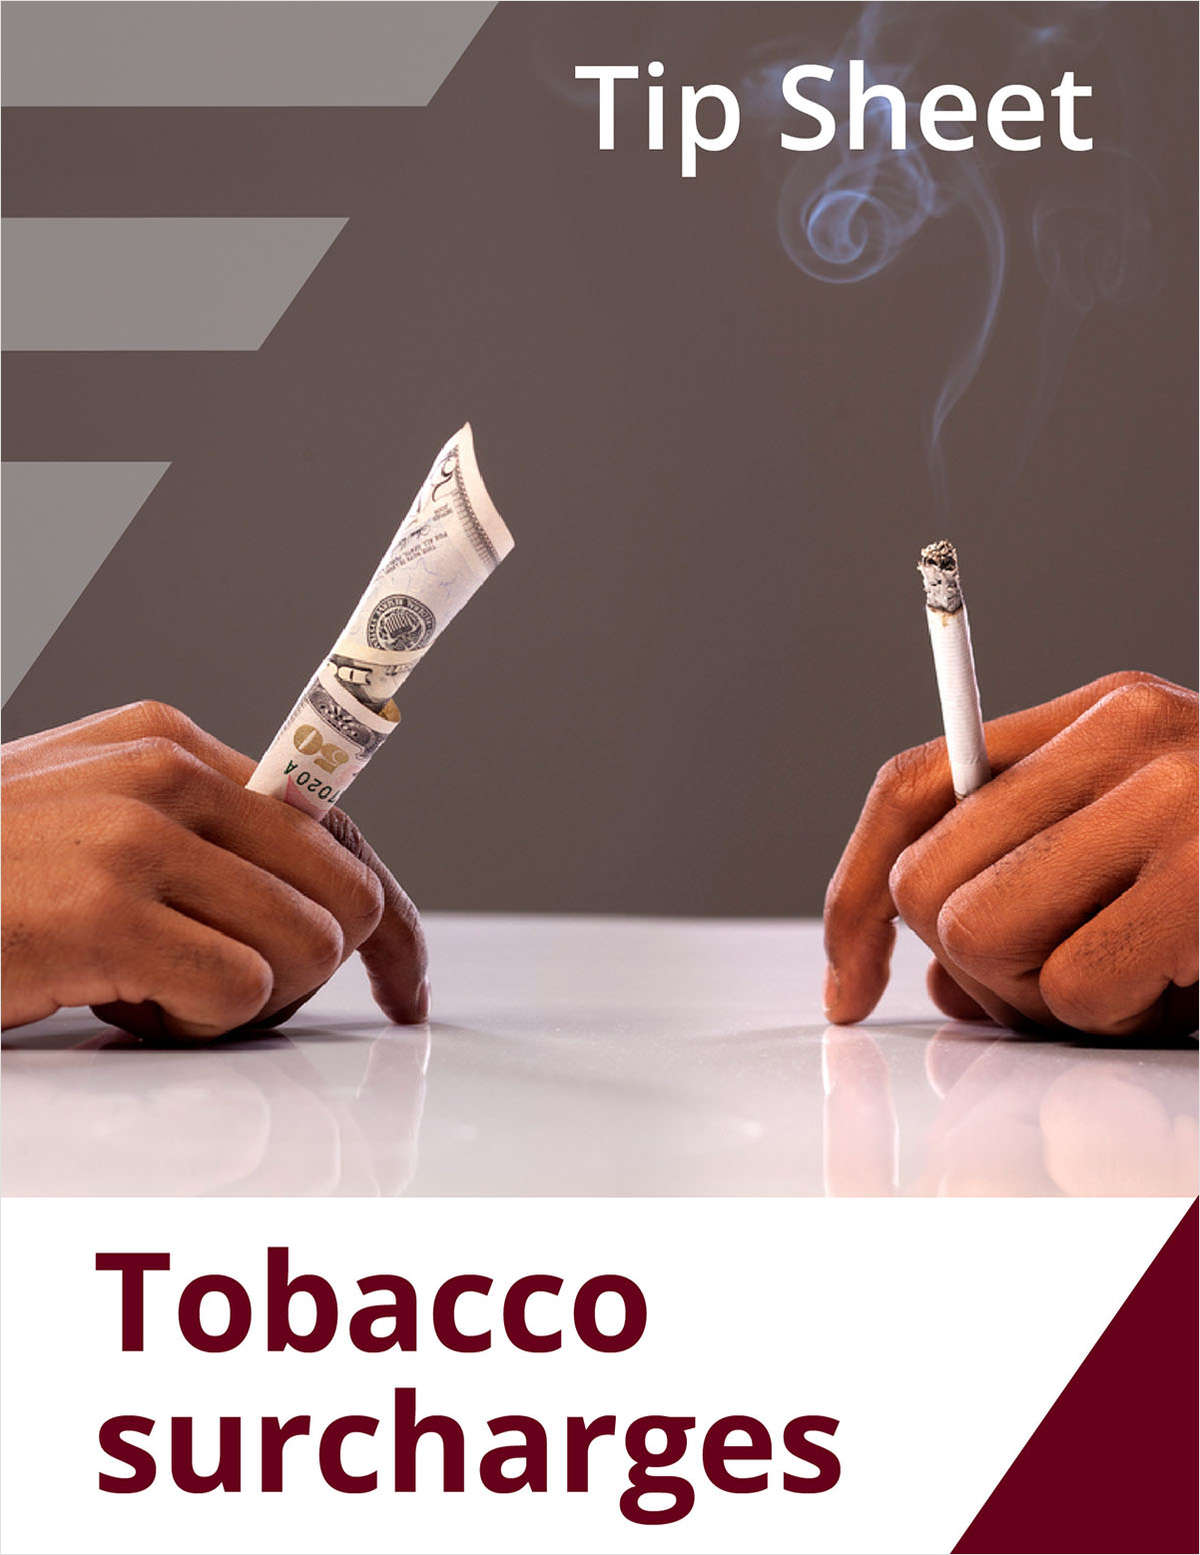 How to Implement an Effective Tobacco Surcharge